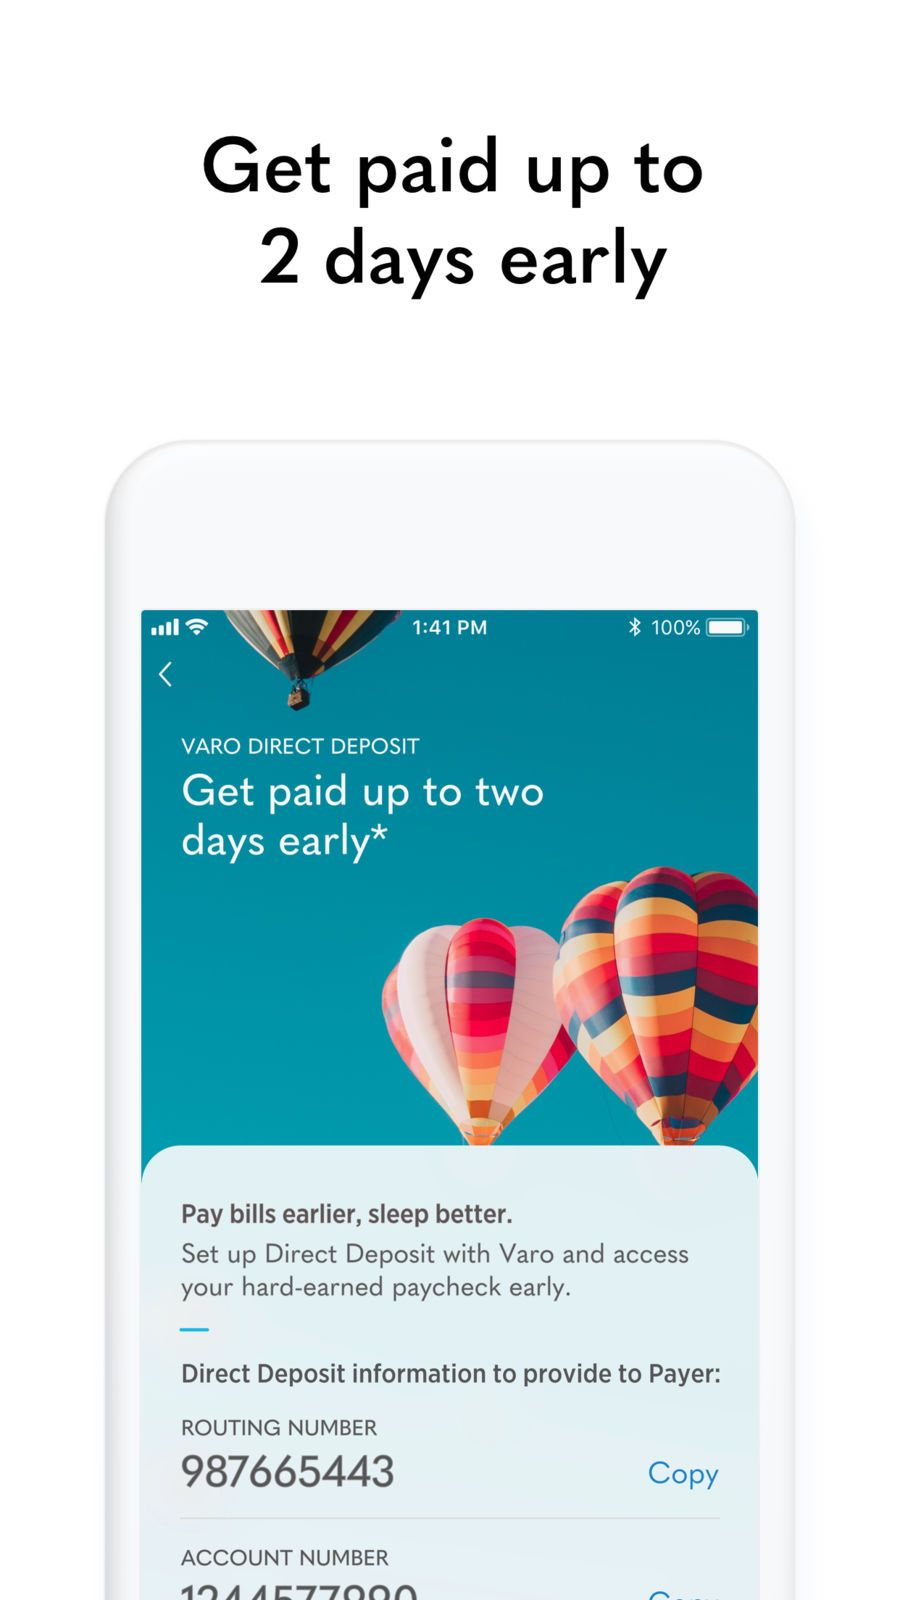 Apple Card users get 24month interestfree financing on